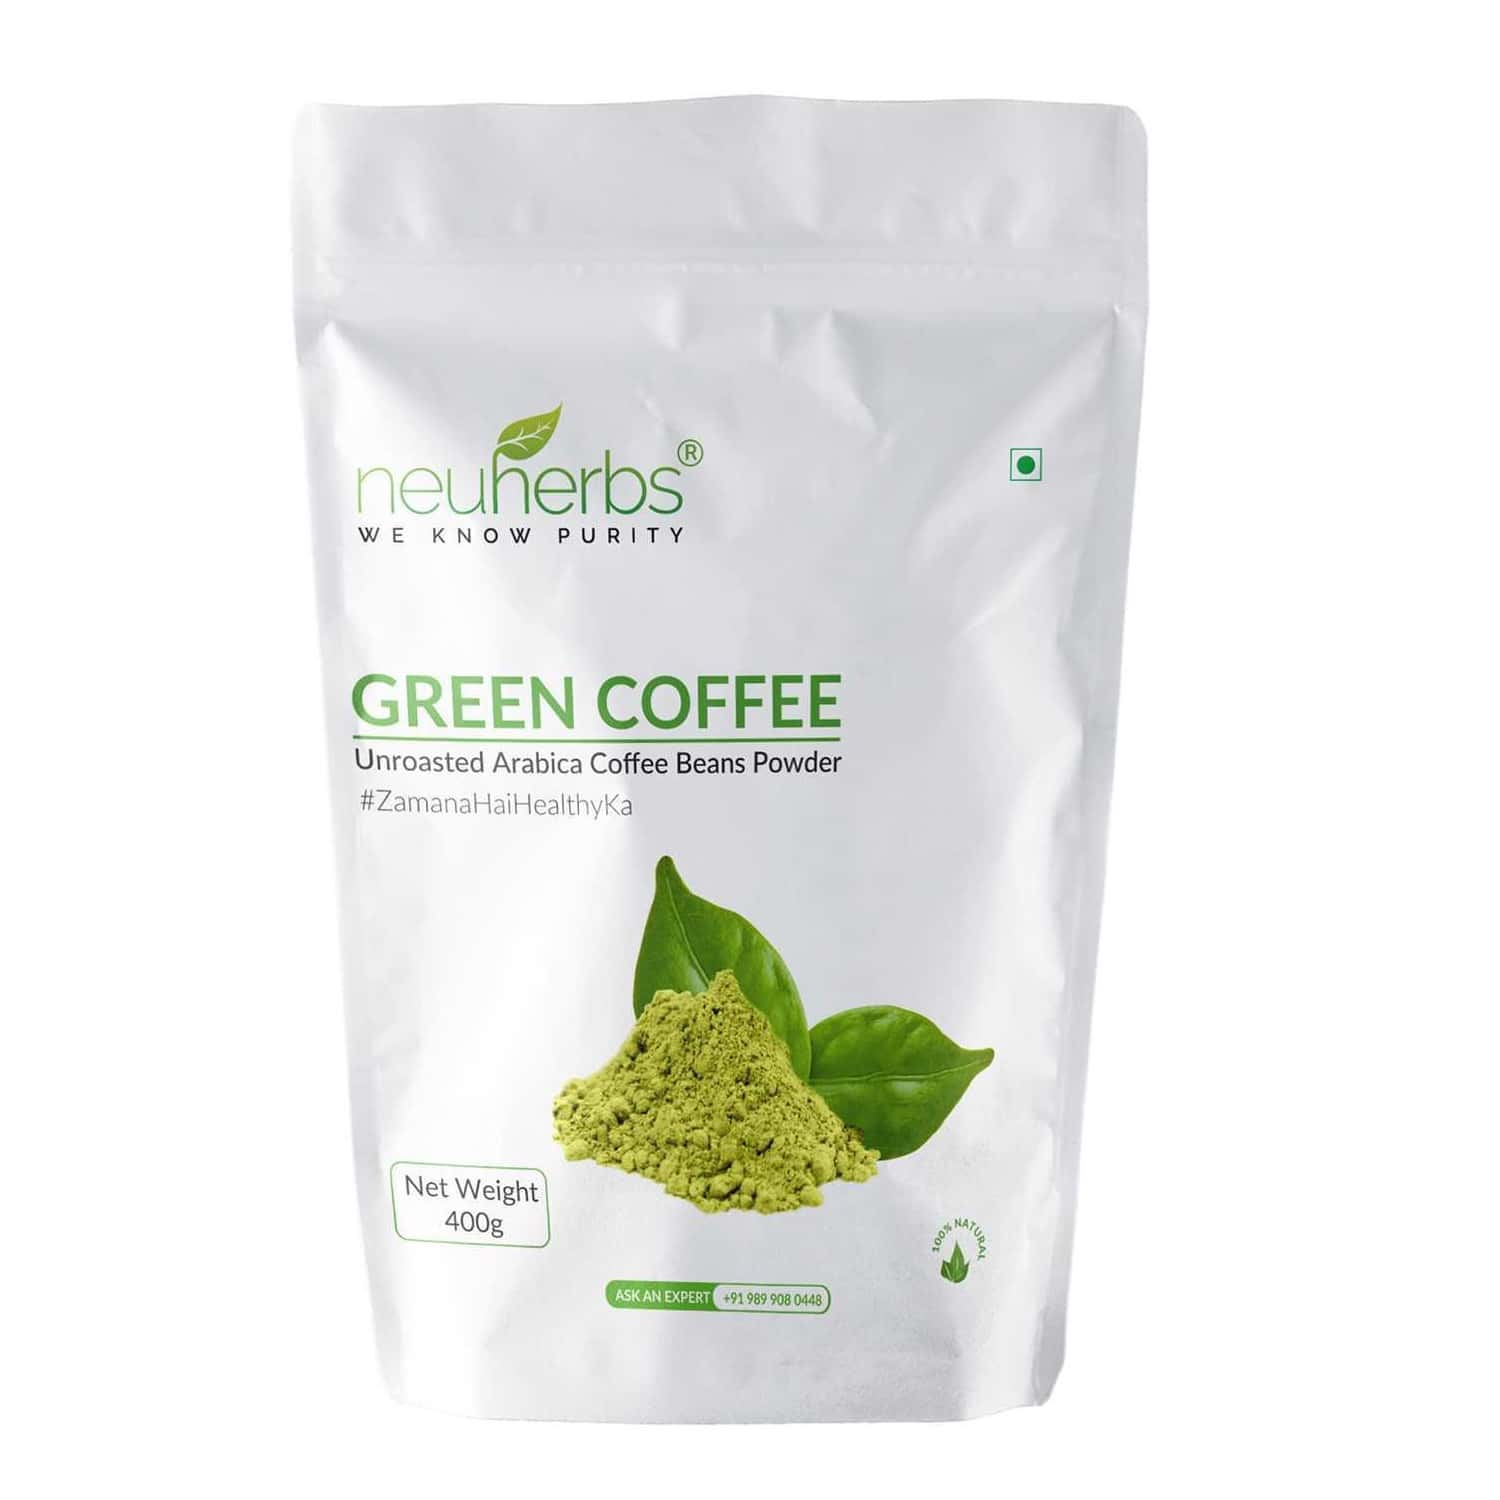 Neuherbs Unroasted Green Coffee Beans Powder For Weight Loss - 400g